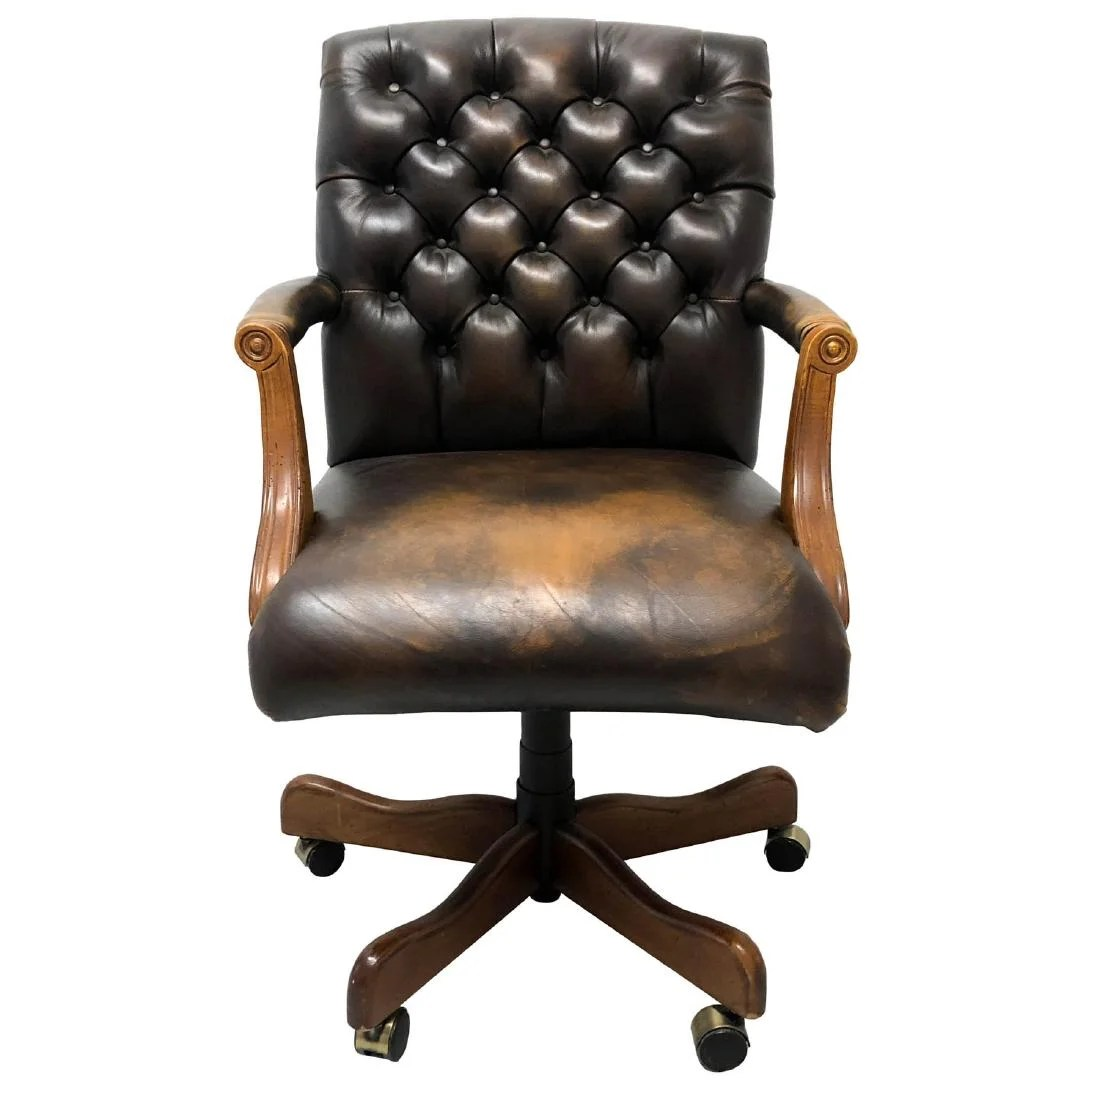 Sam Moore Chairs Tufted Polo Leather Sam Moore Executive Chair On Liveauctioneers